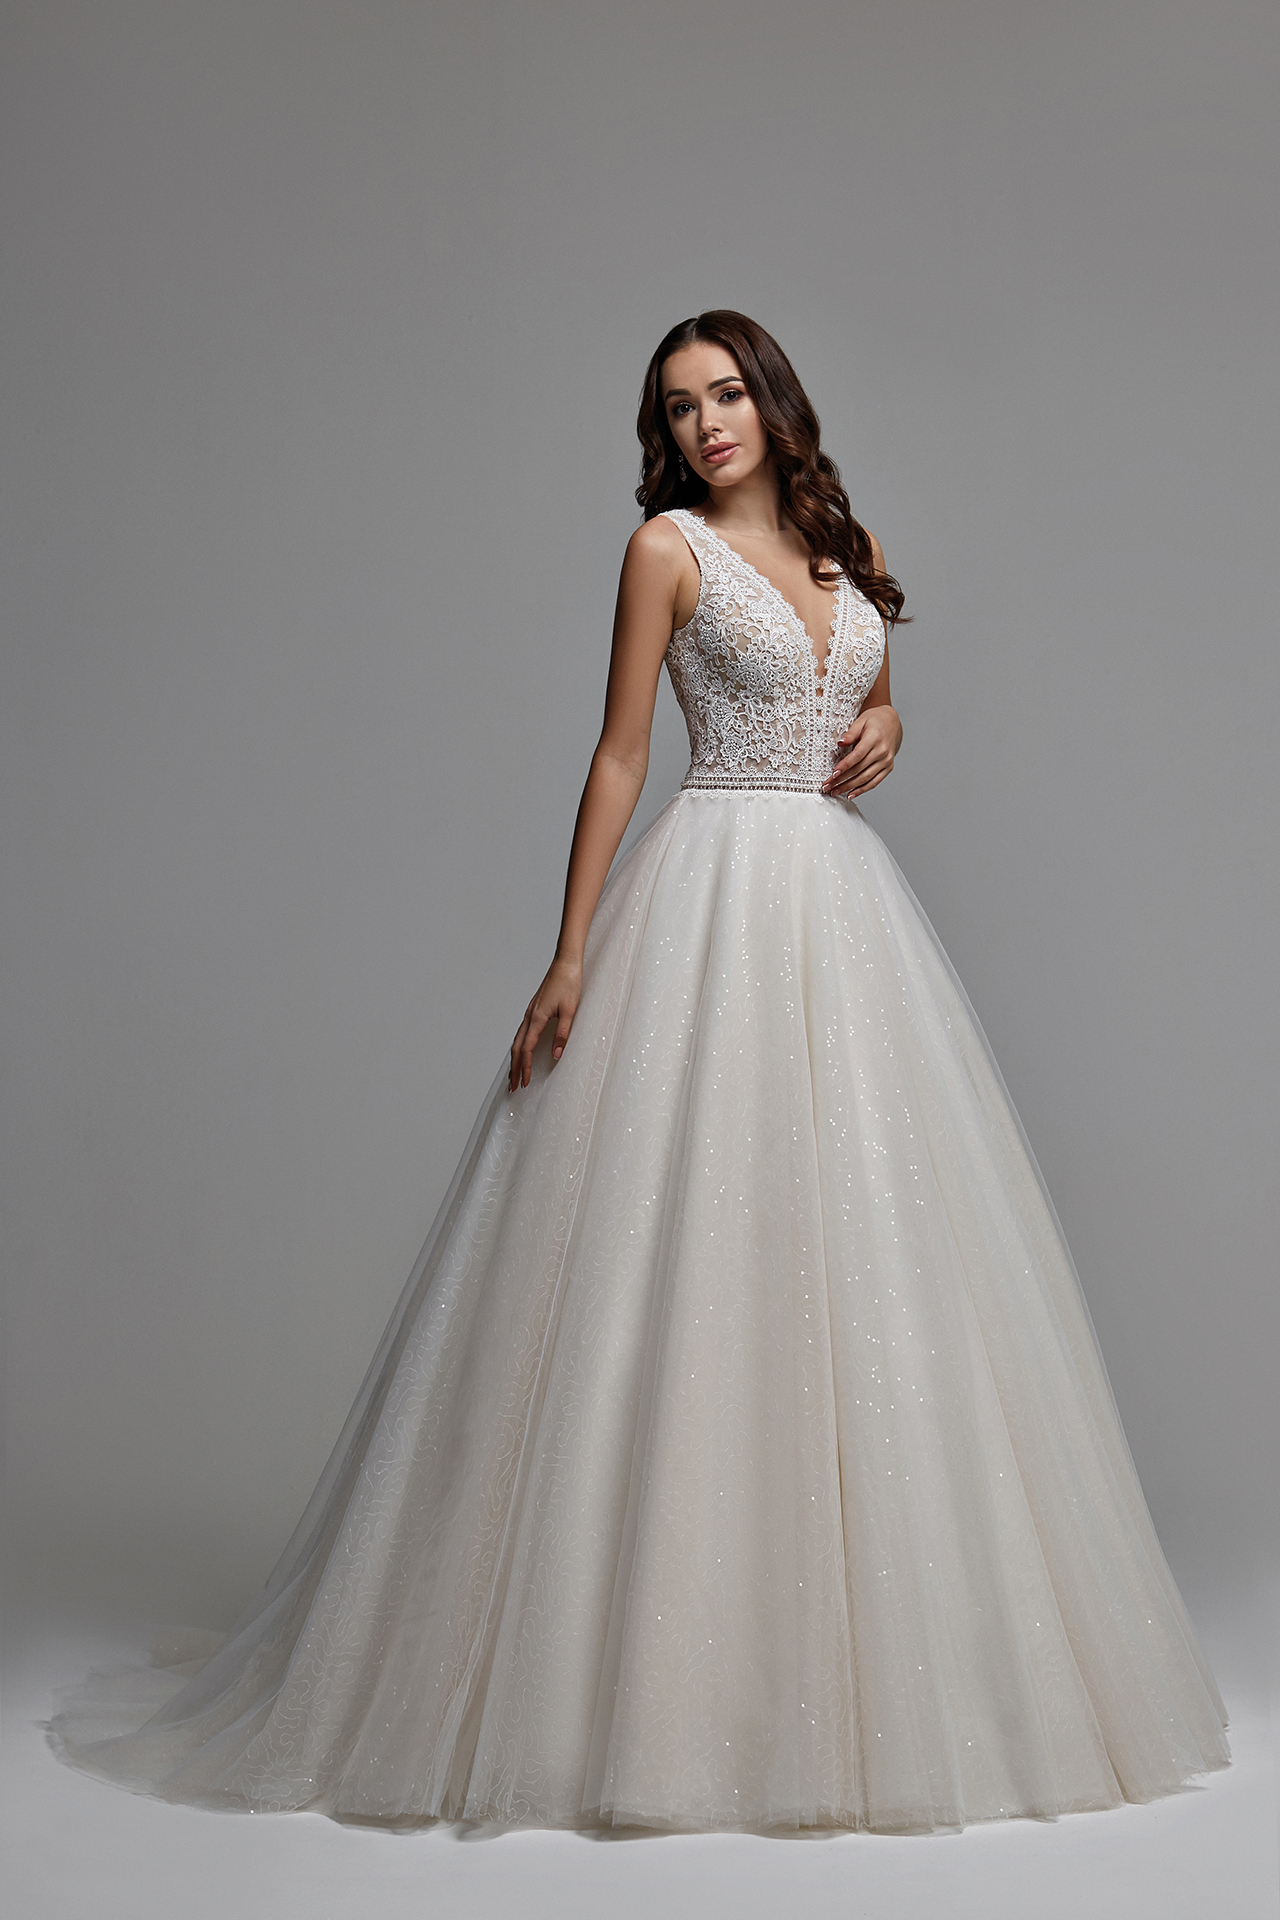 Buy A Wedding Dress Izabella Fitted Silhouette With A Fluffy